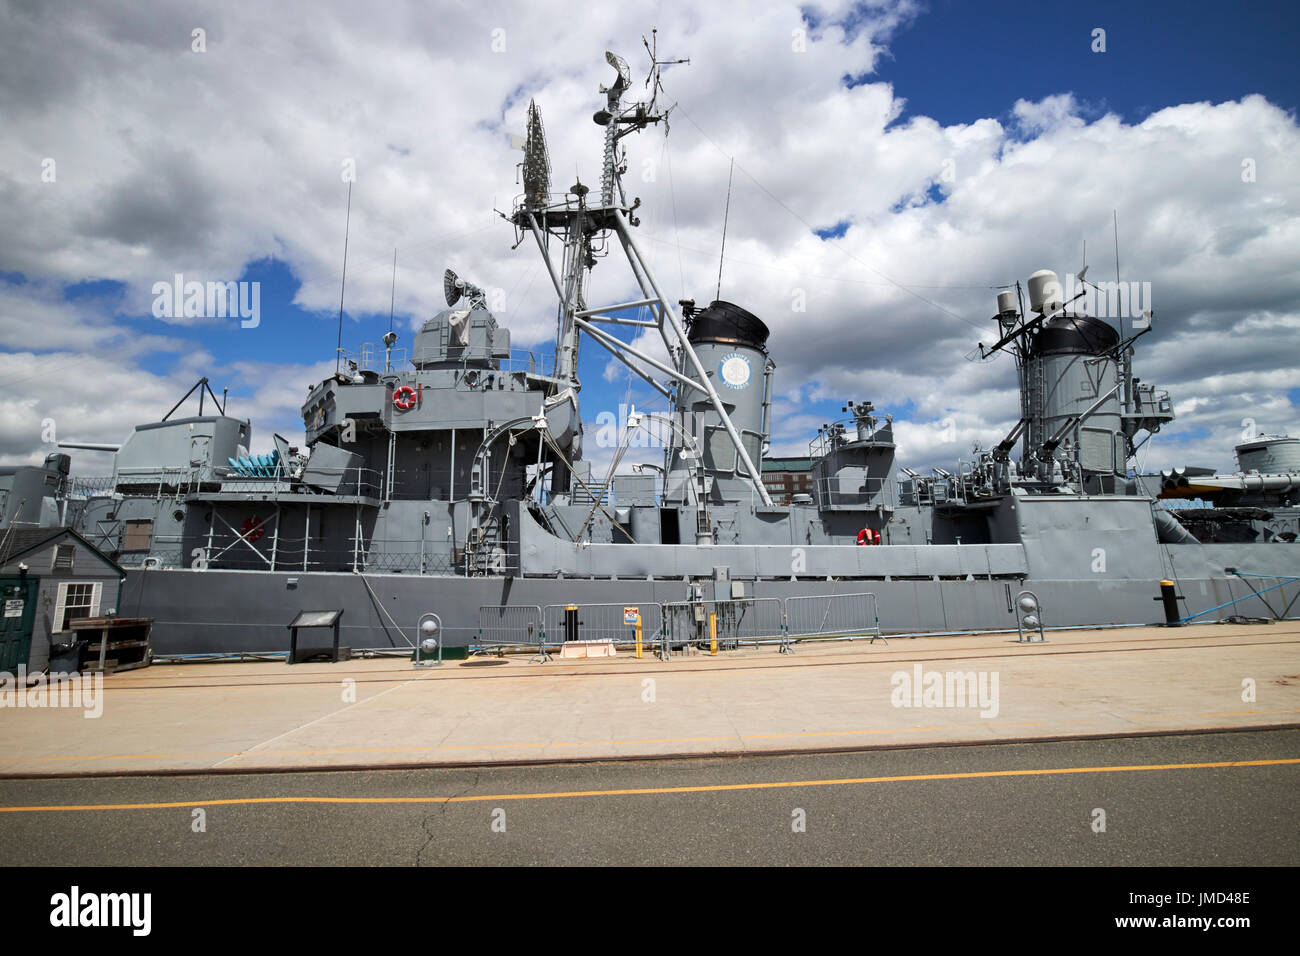 uss cassin young at Charlestown navy yard Boston USA - Stock Image